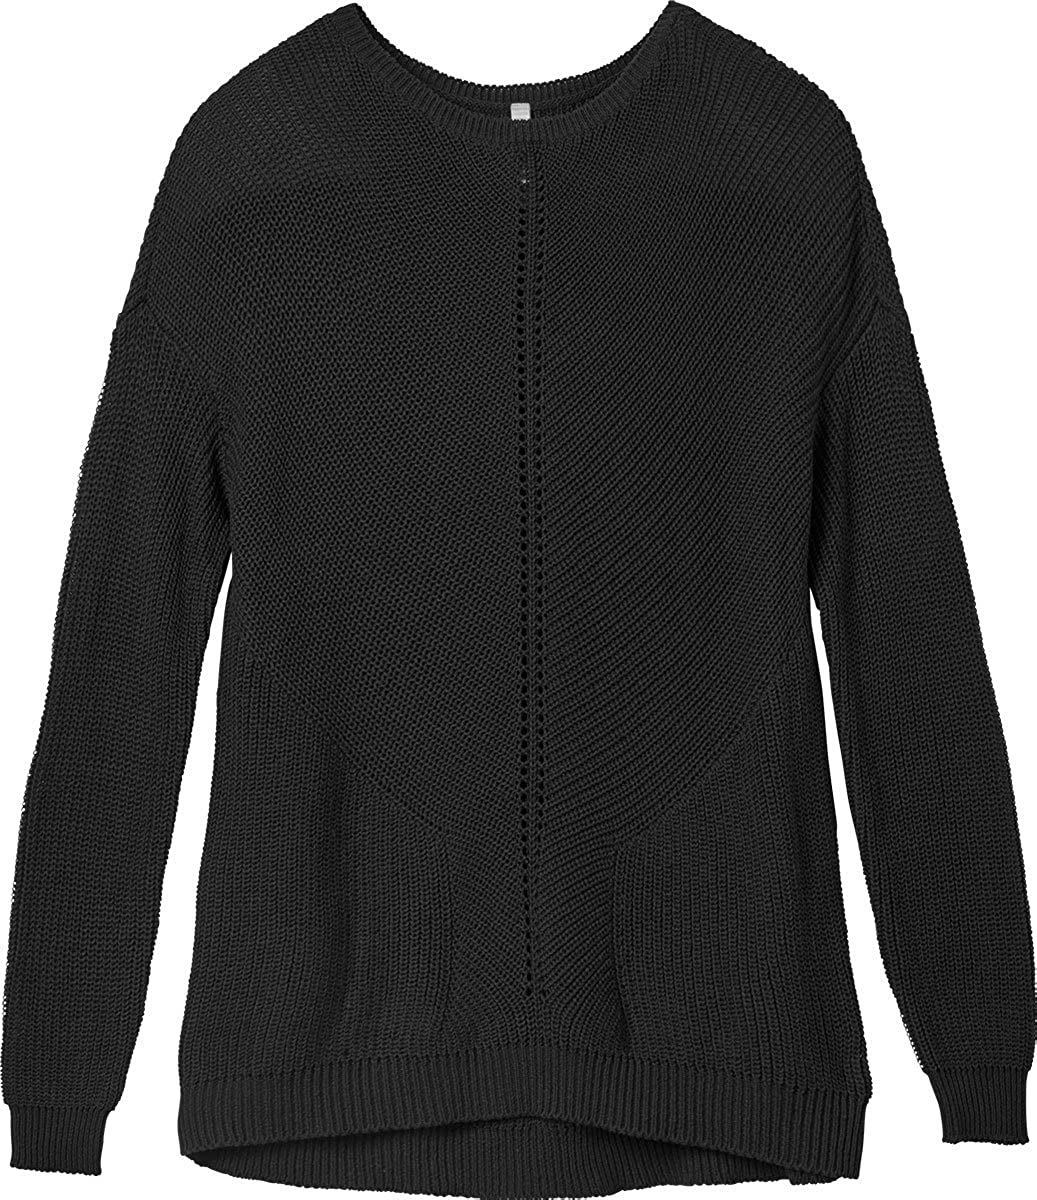 RVCA Juniors Challenge the lowest price of Japan Dedication Thriller Sweater Crew Pullover